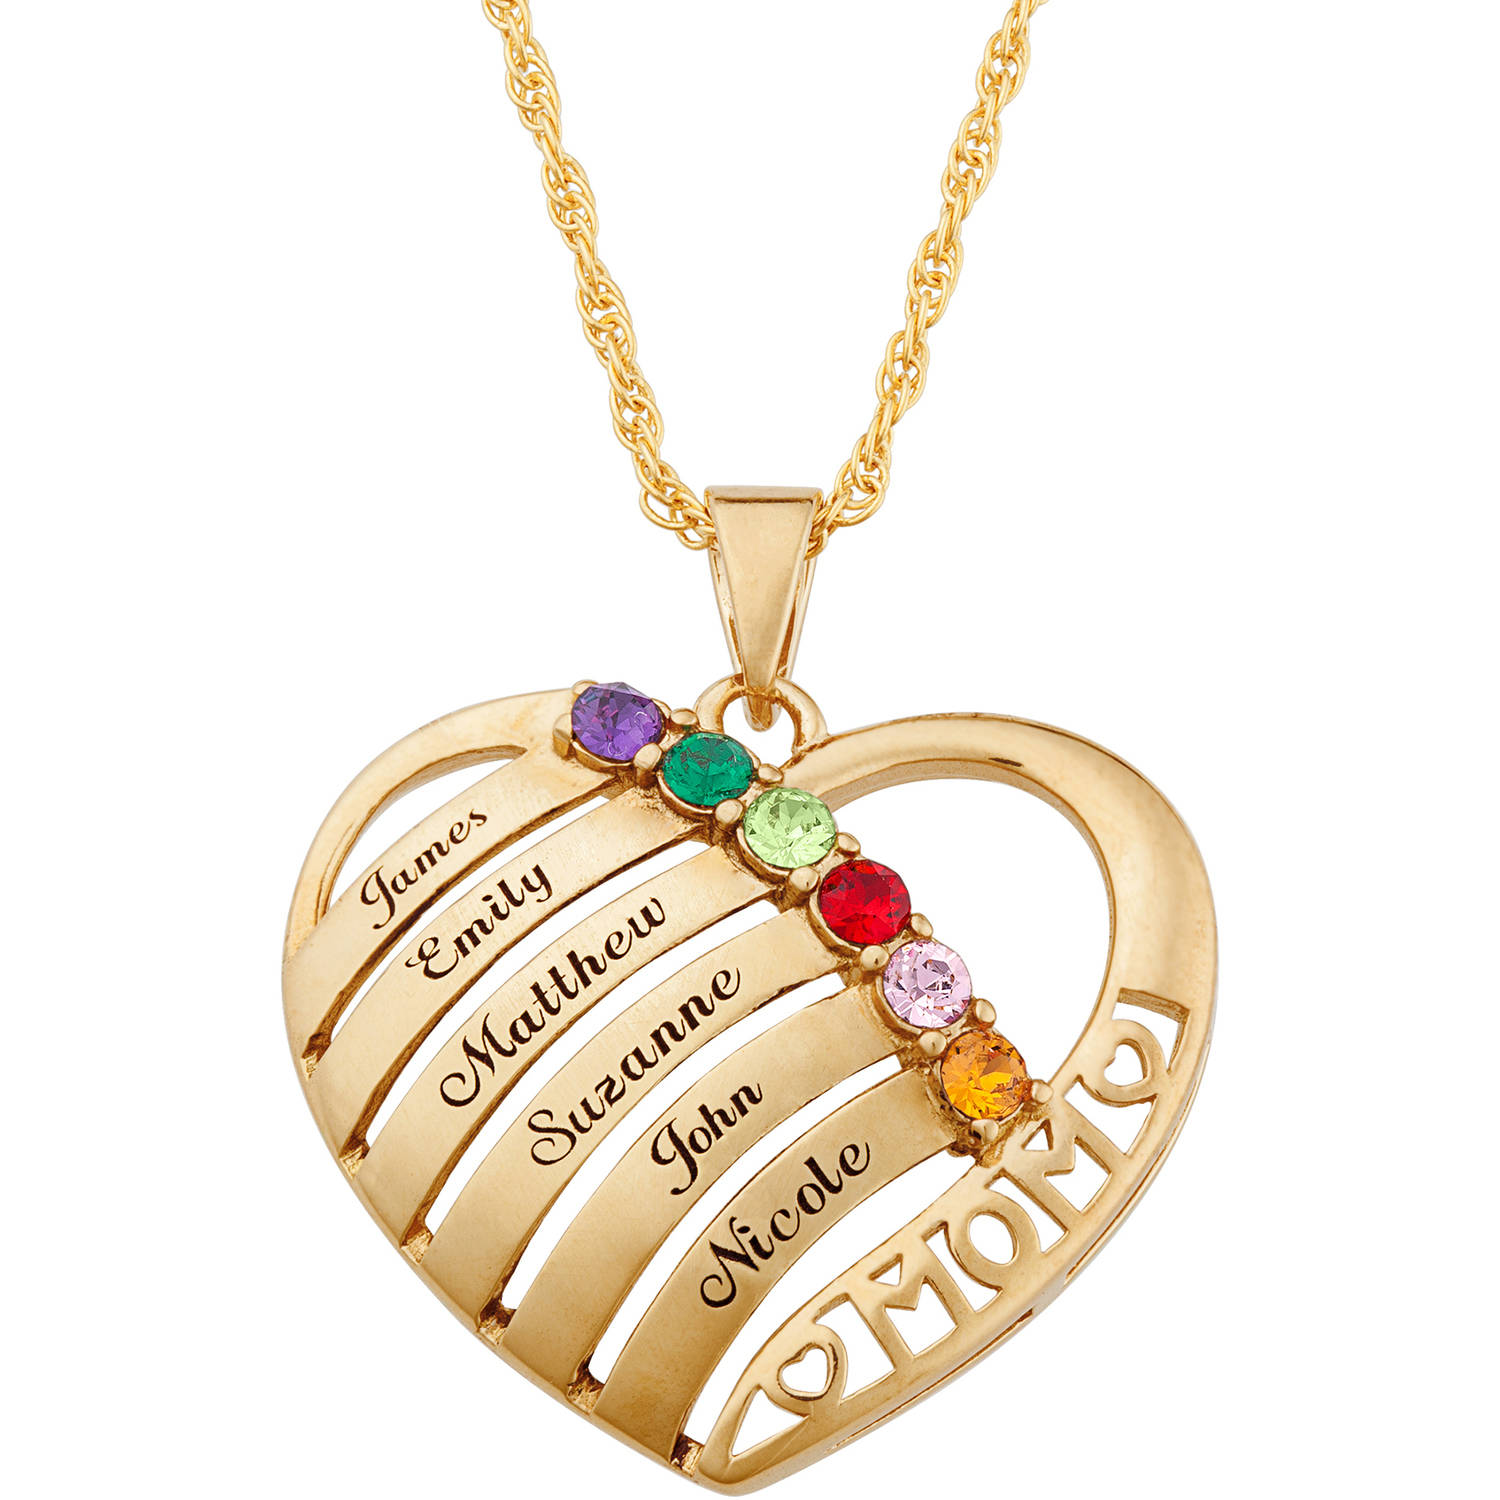 Personalized 14kt Gold-Plated Mother Birthstone & Name Heart Necklace